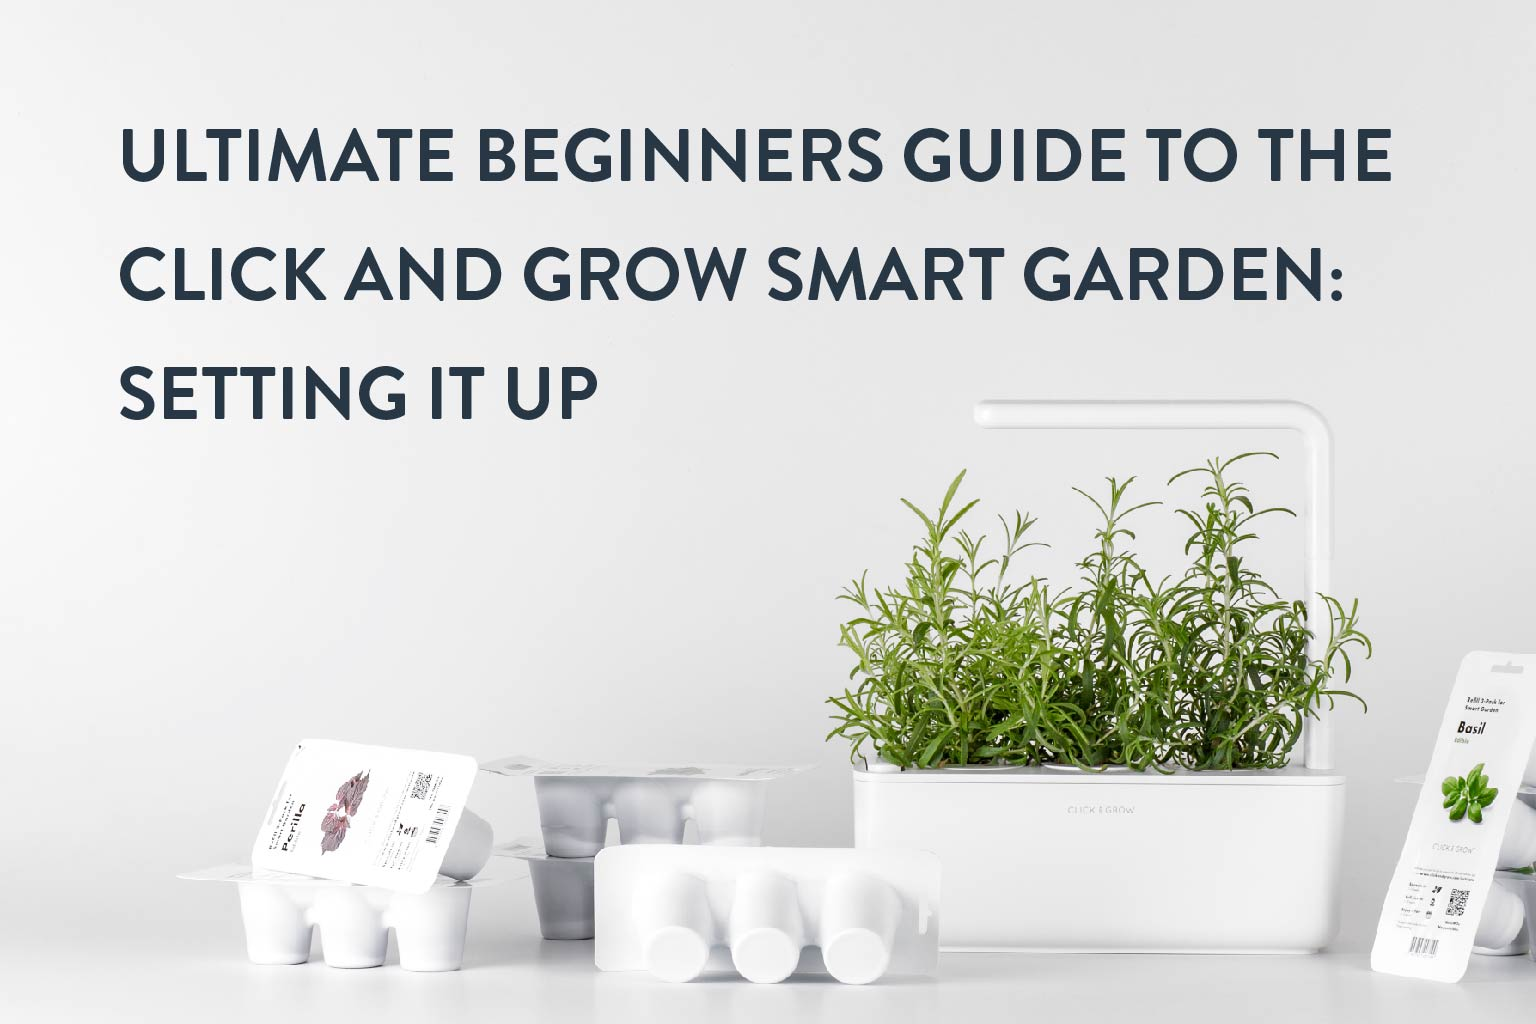 Ultimate Beginners Guide To The Click And Grow Smart Garden: Setting It Up